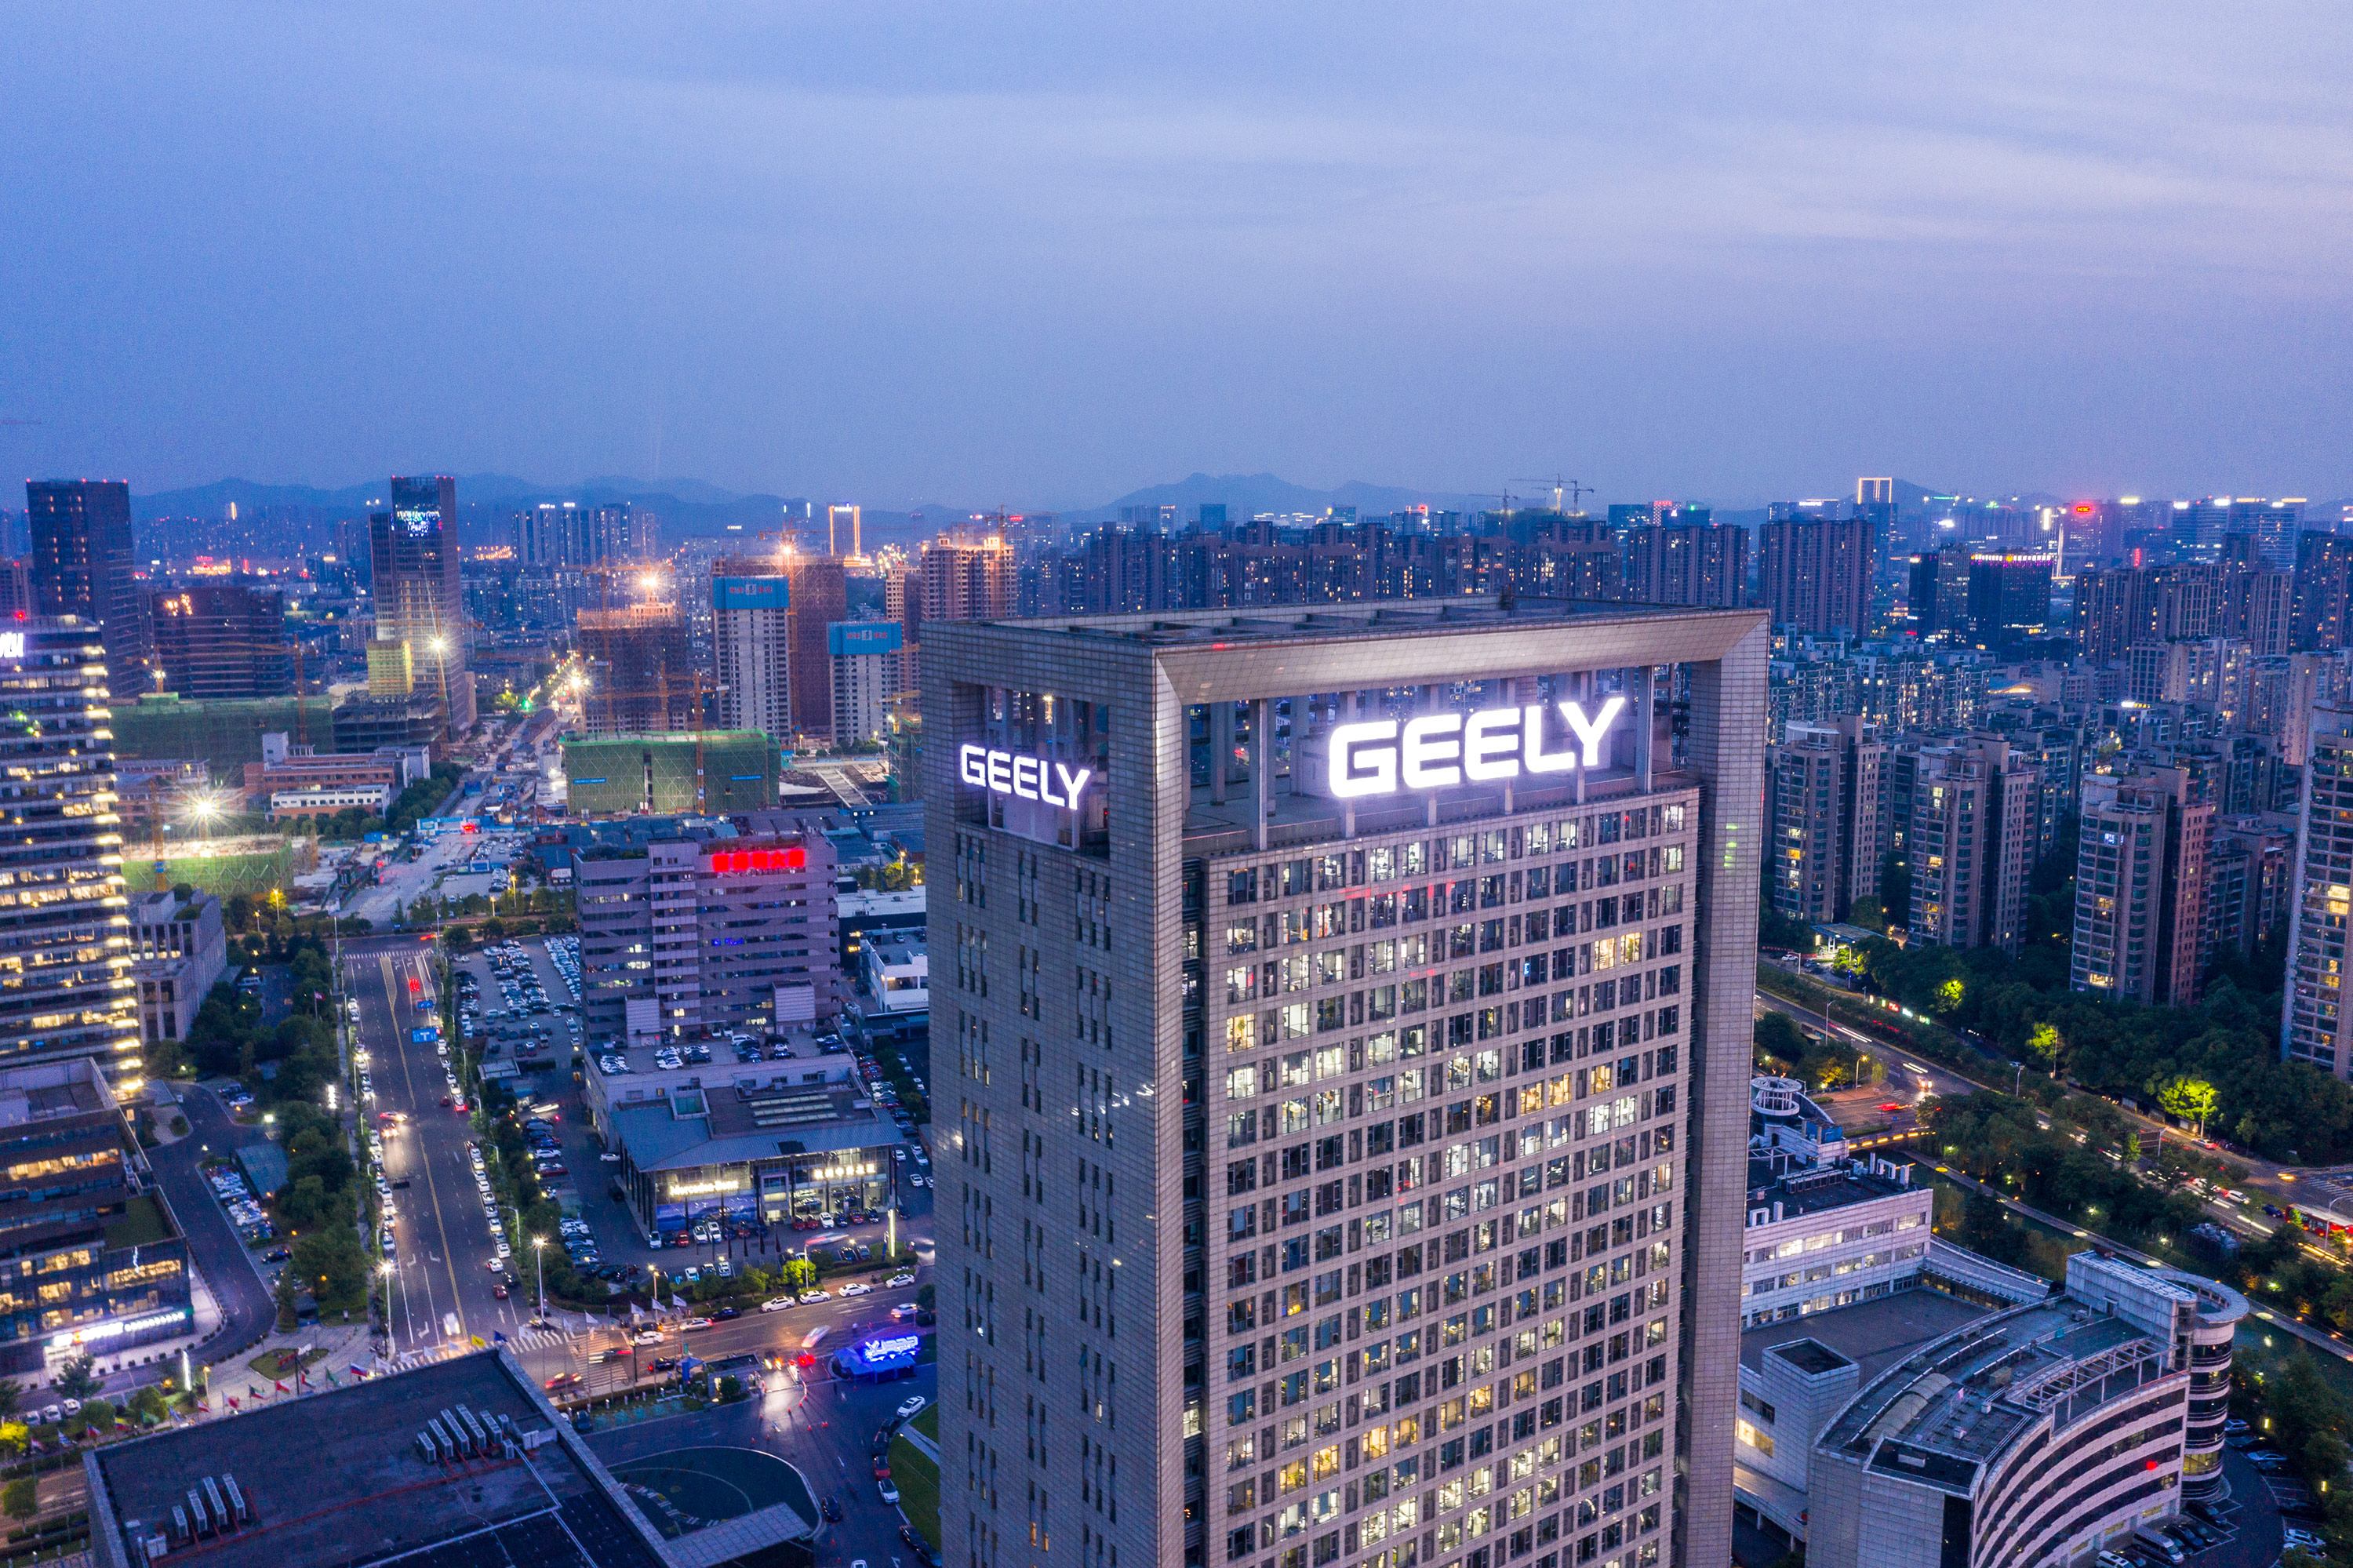 Geely ditches Volvo merger but still needs its partner to go global